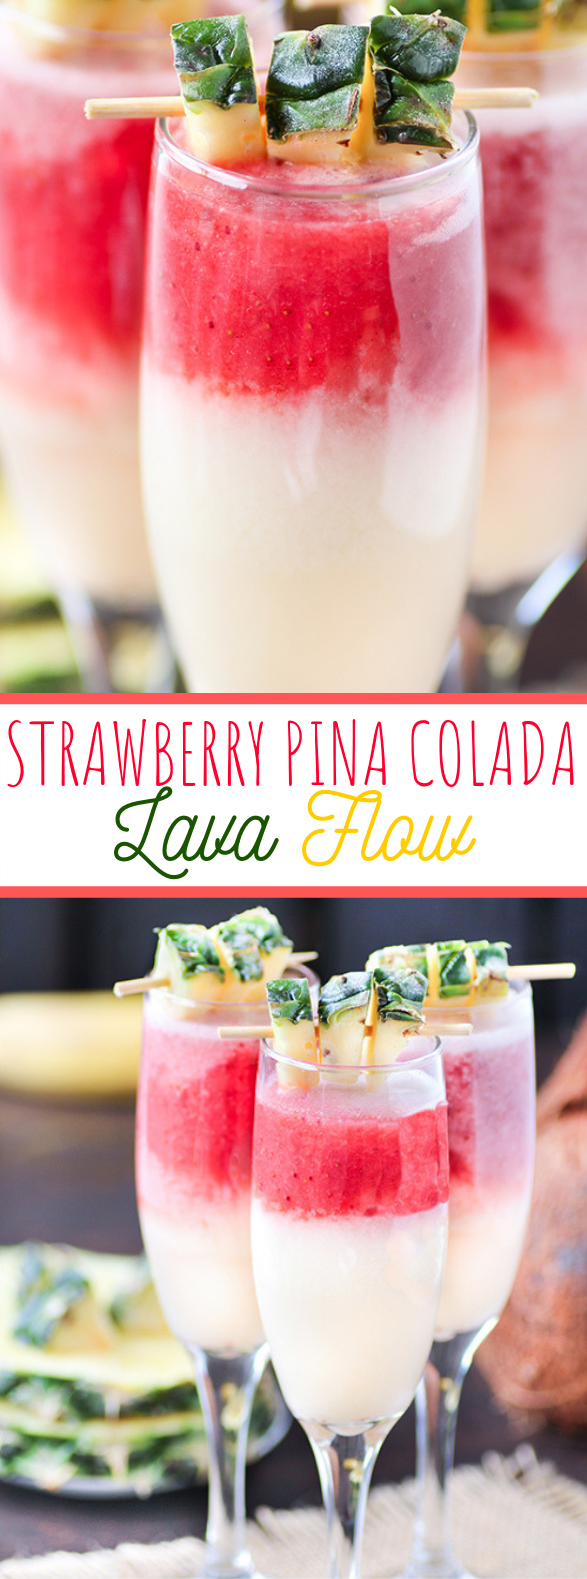 Strawberry Pina Colada Lava Flow #drinks #tropical